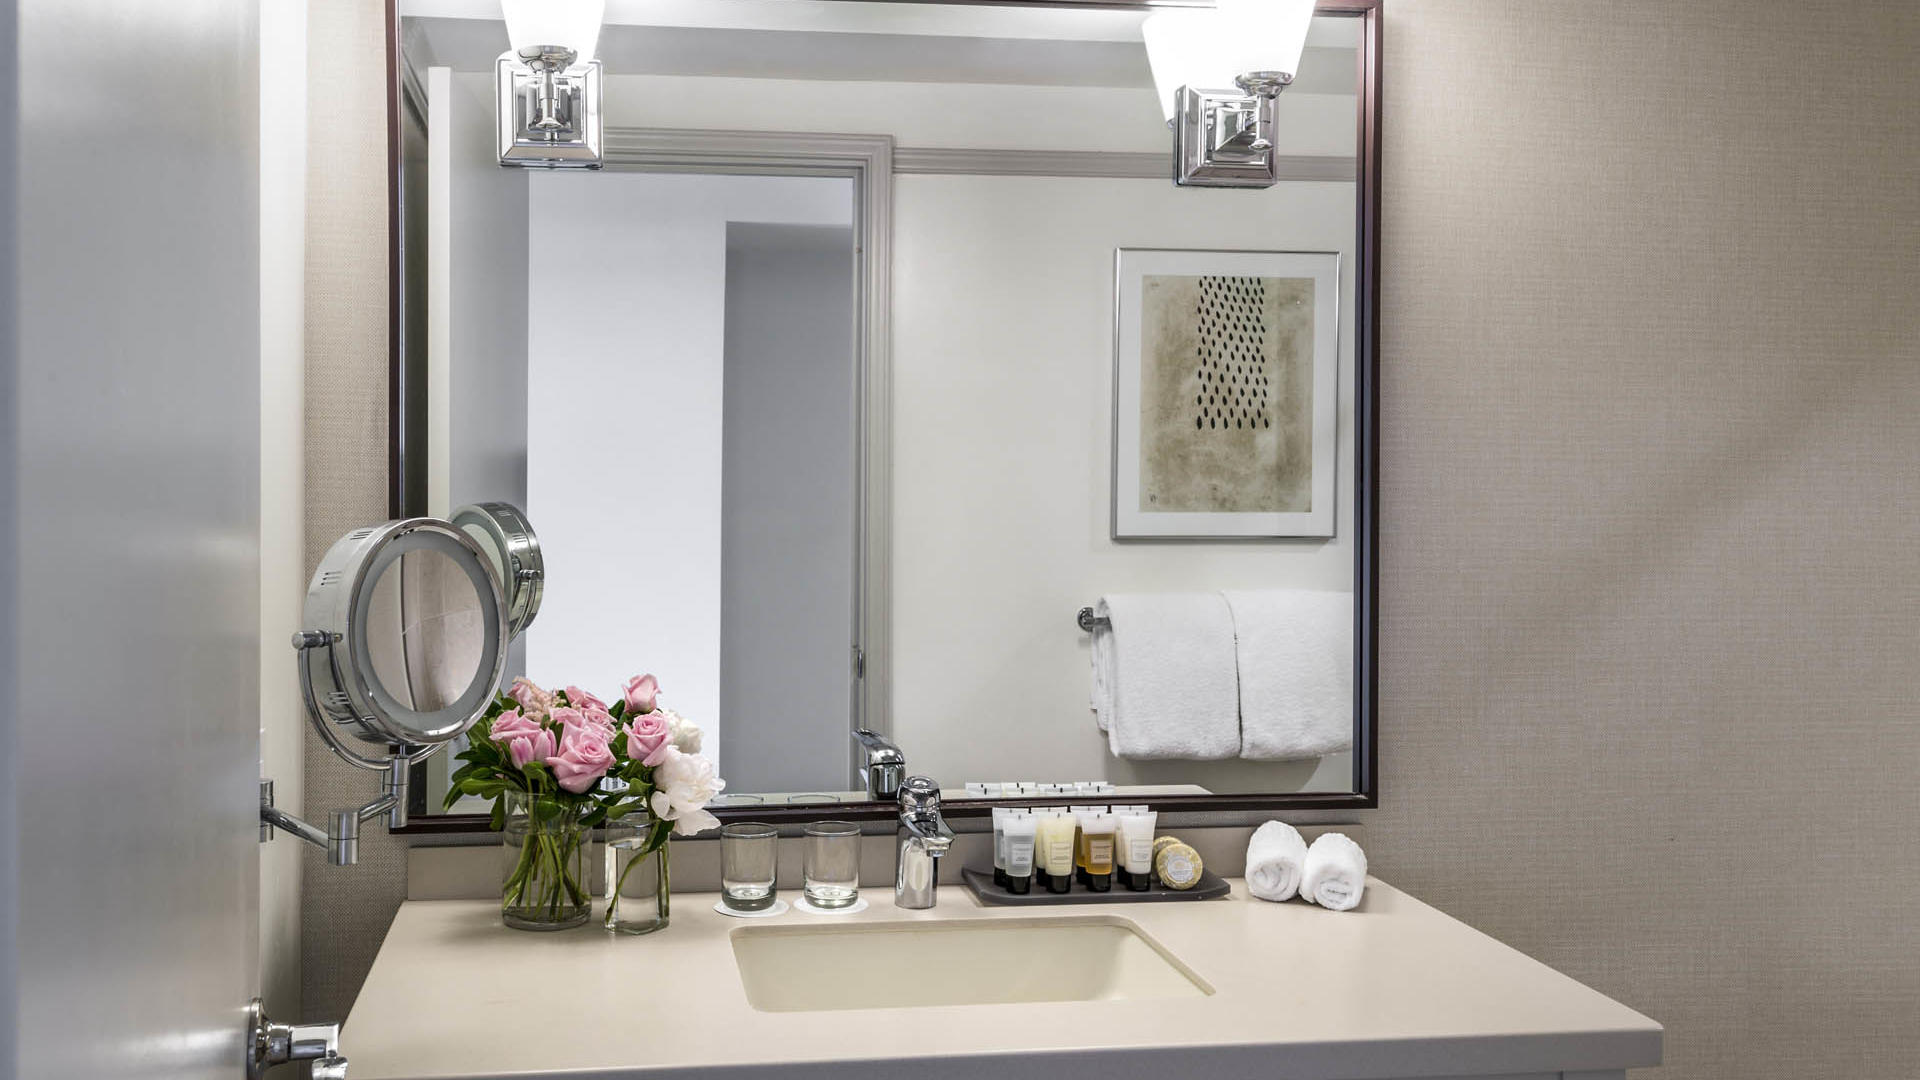 Executive Suite Bathroom Sink at Warwick Denver